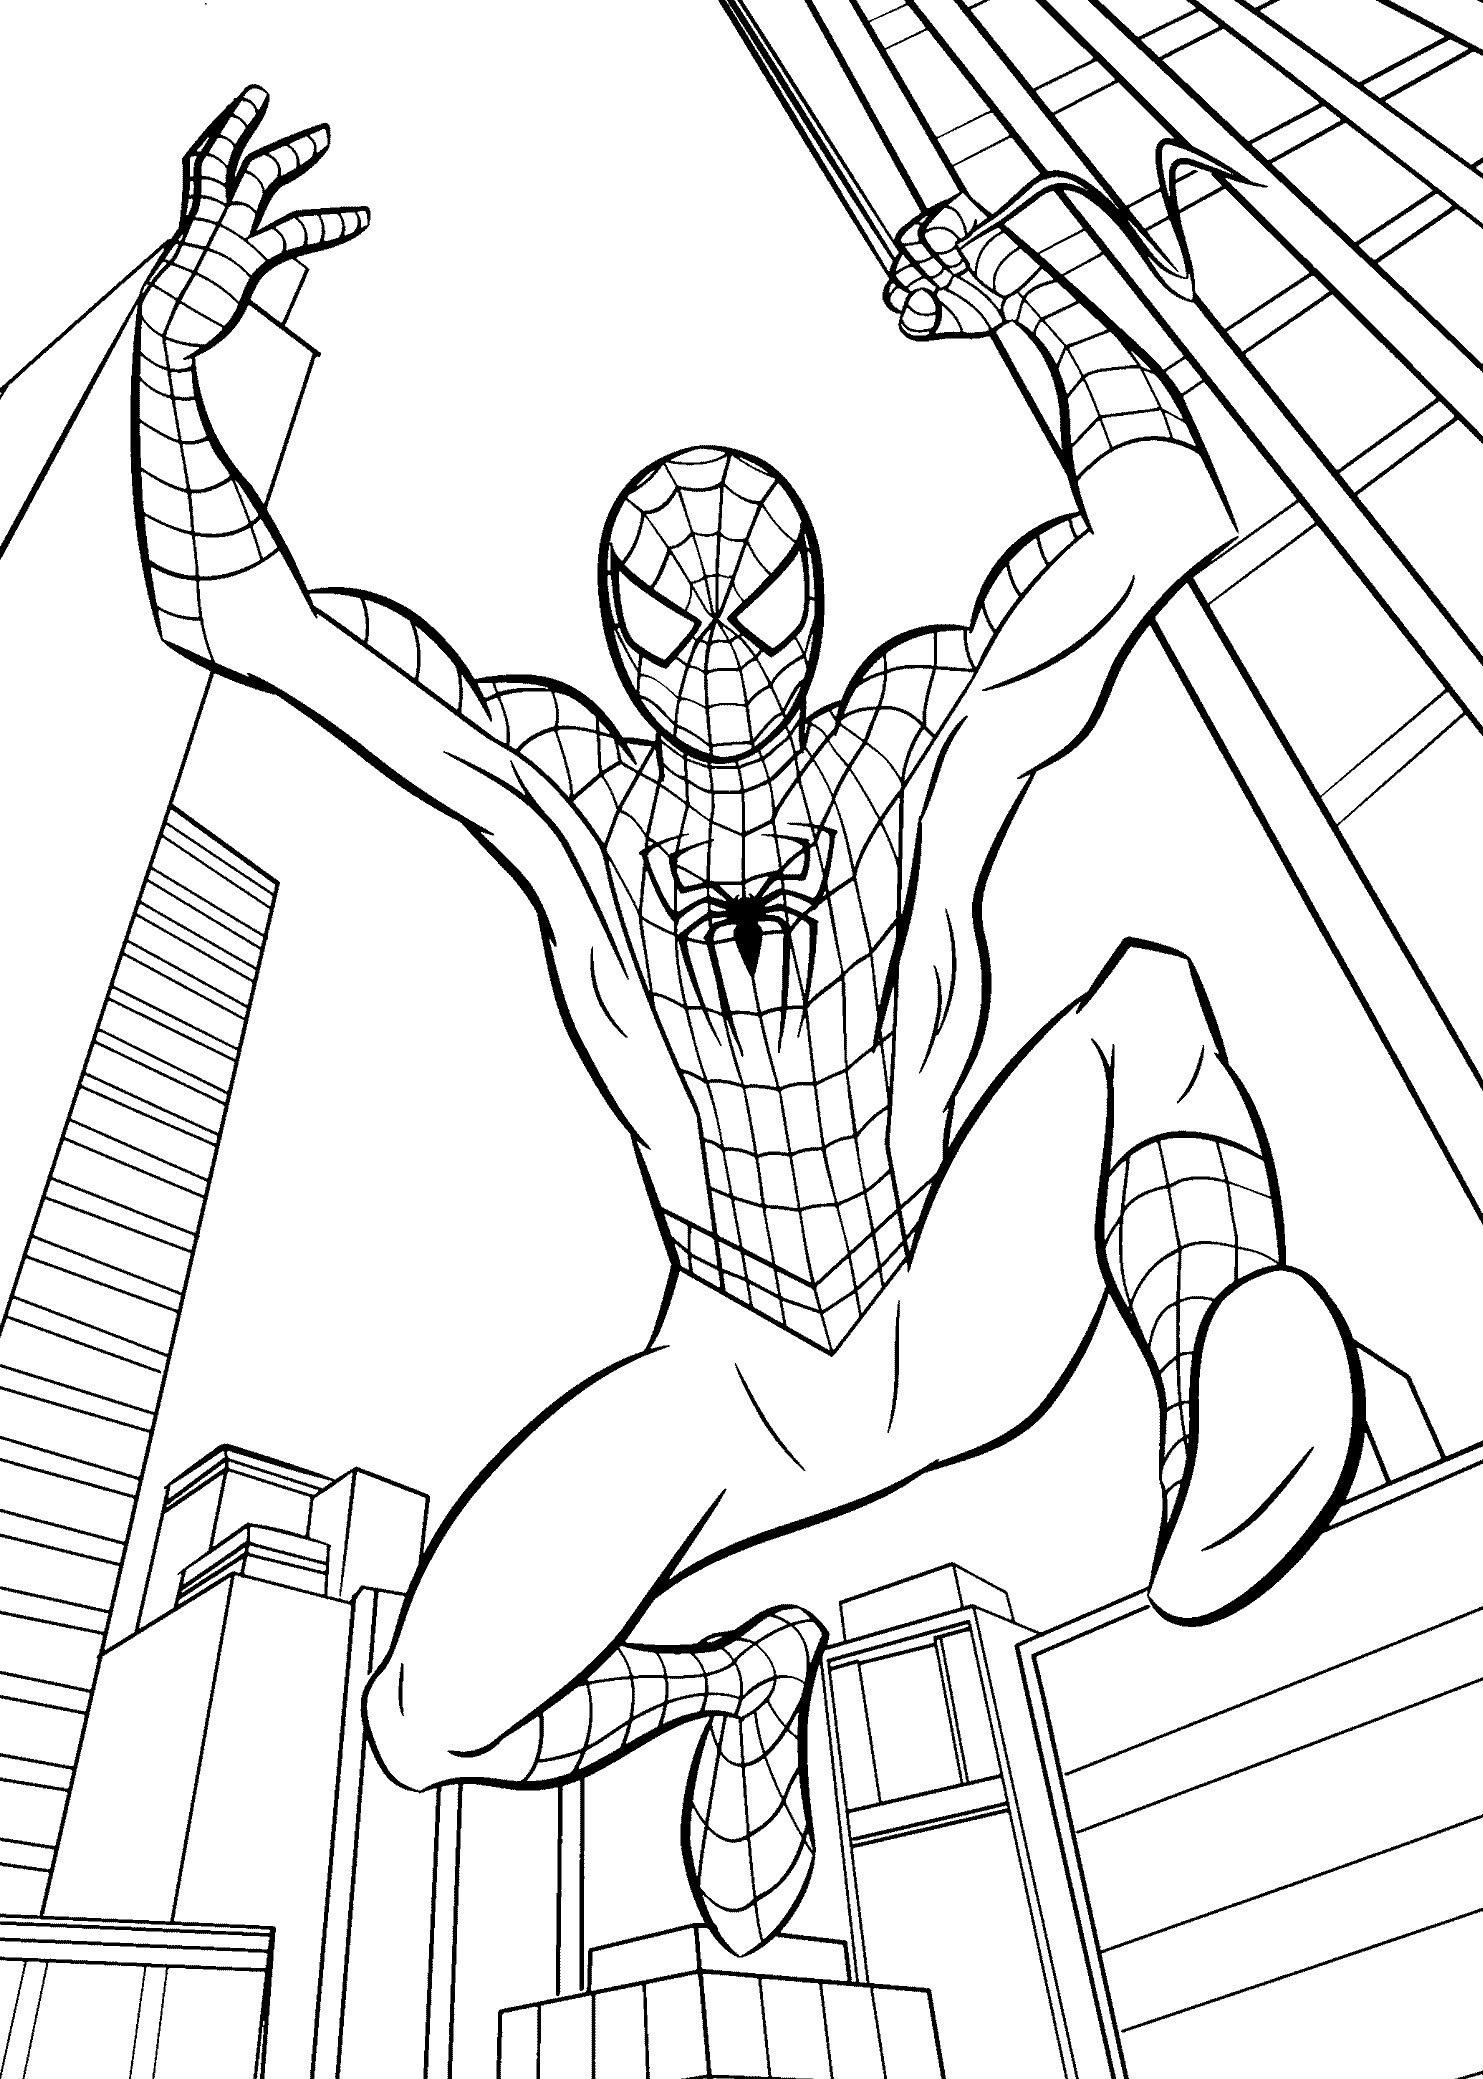 Unlock Spider Man Colouring Pages Strange Spiderman Color Sheet Guaranteed Printable Colori Superhero Coloring Pages Avengers Coloring Pages Superhero Coloring